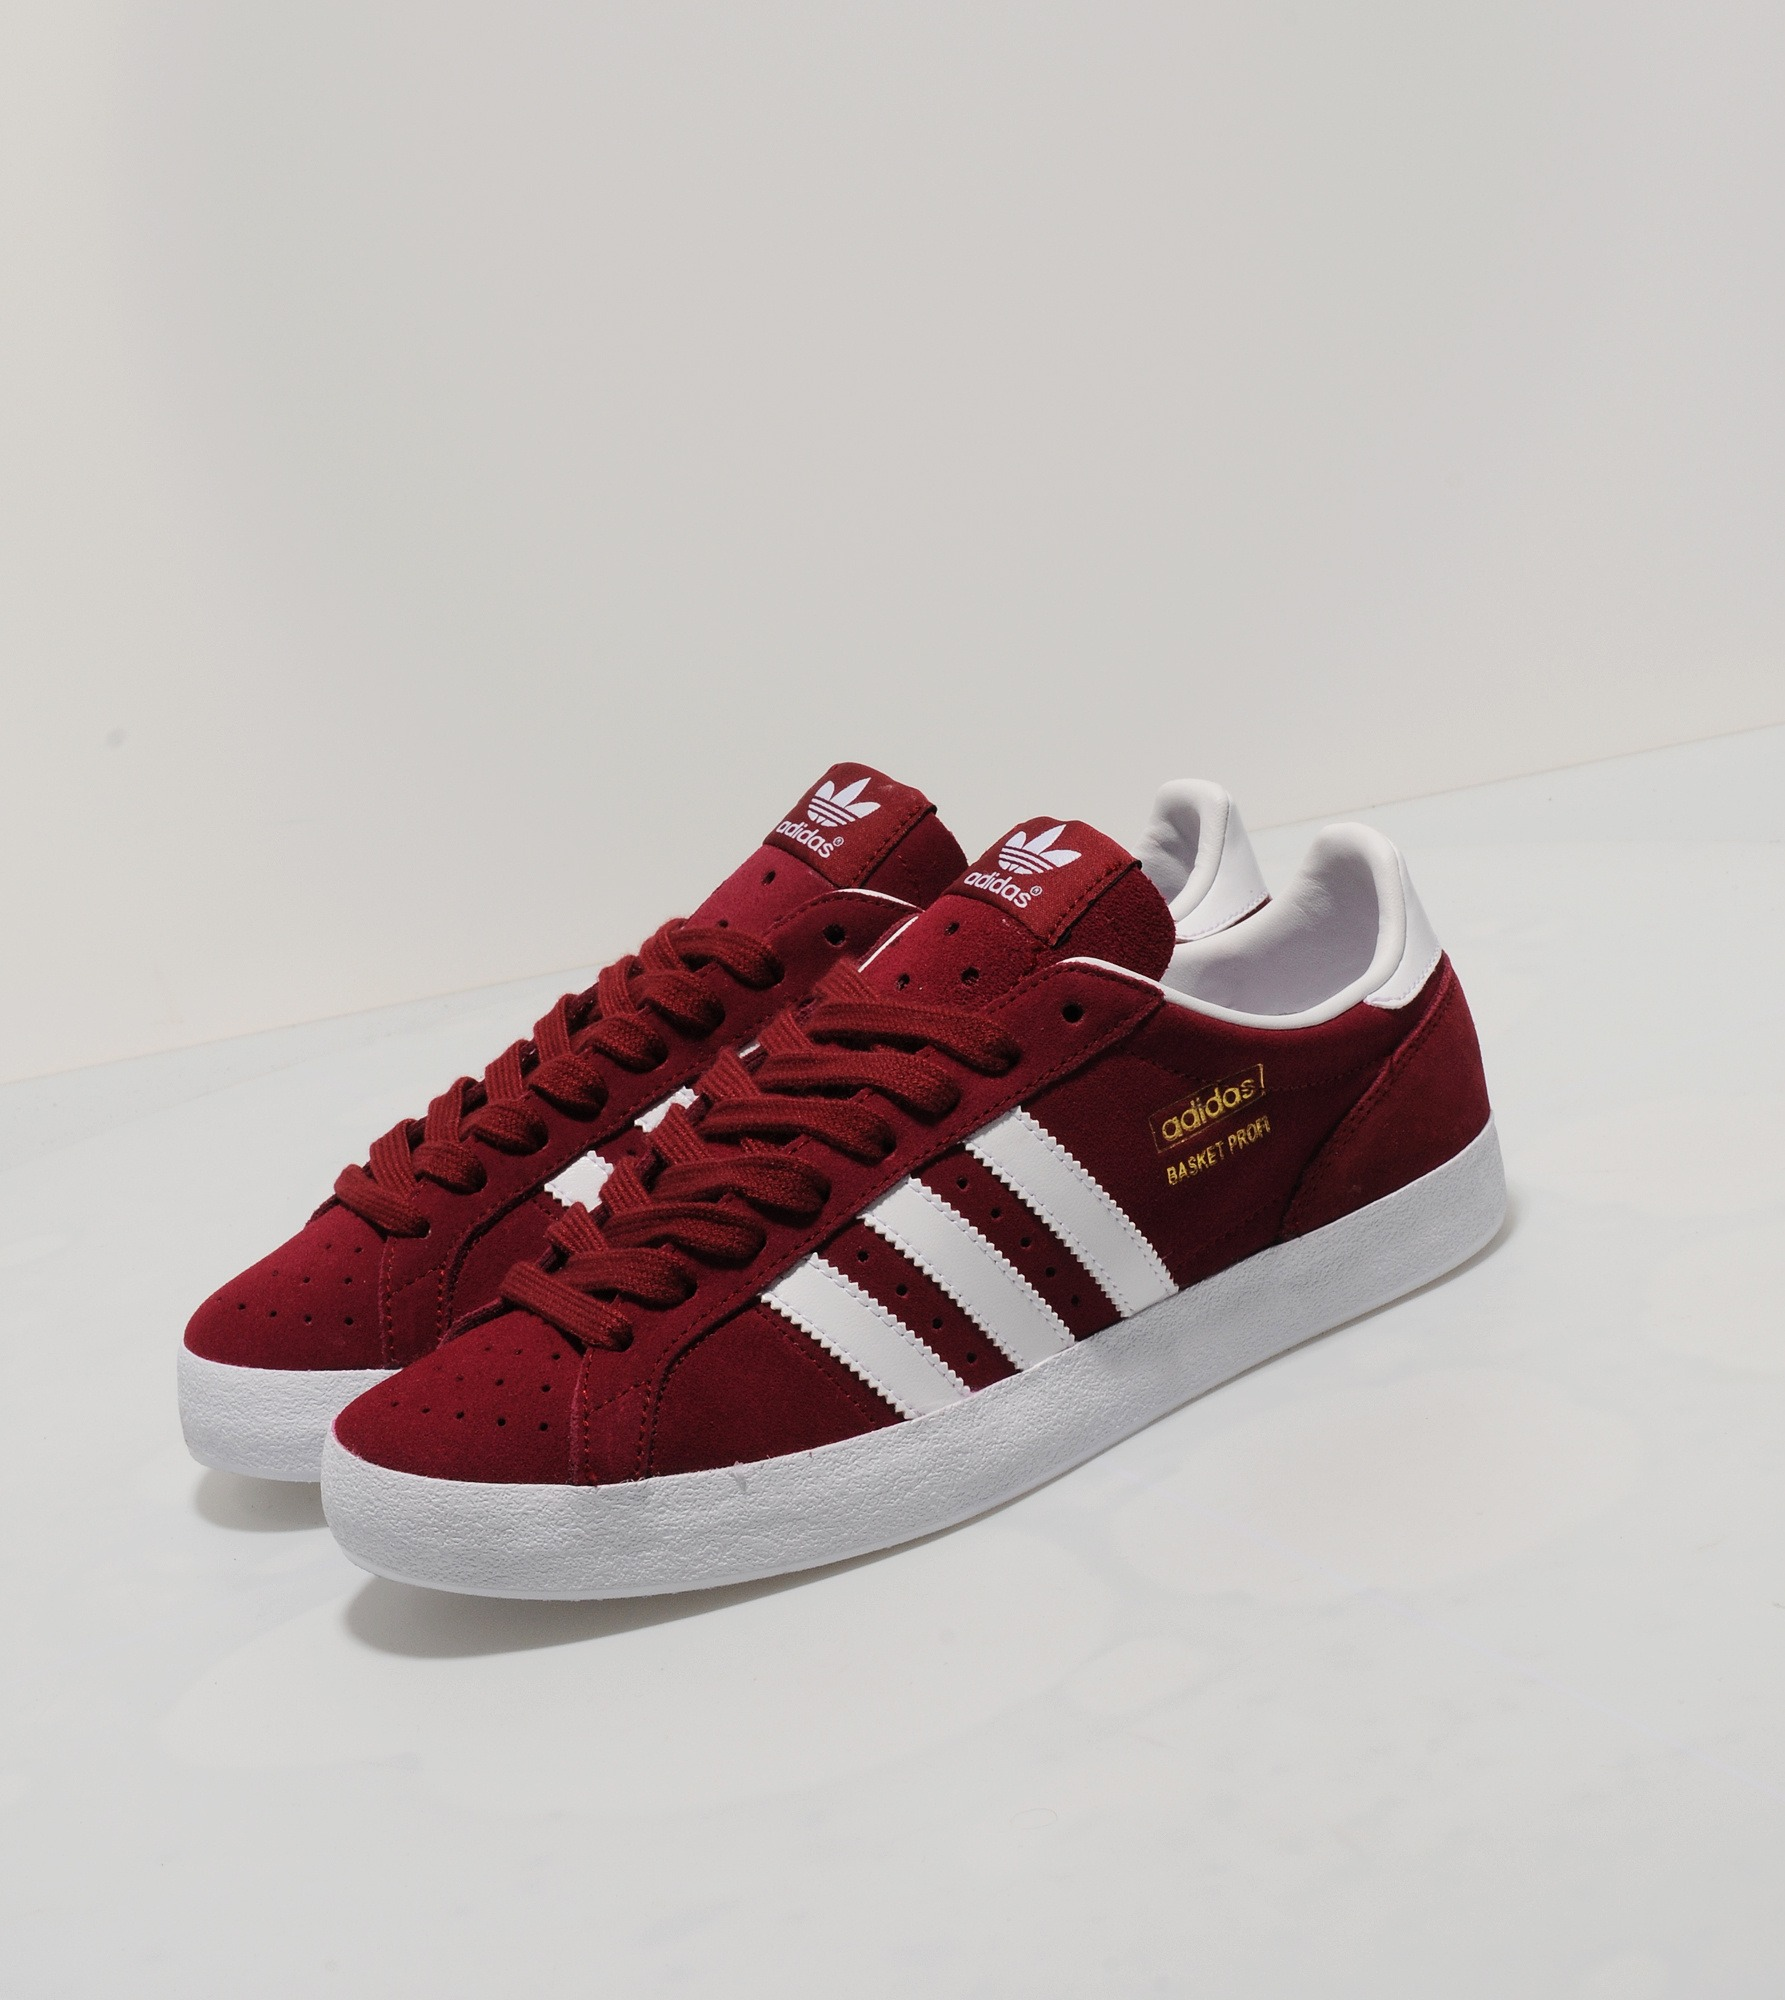 adidas basket low profi